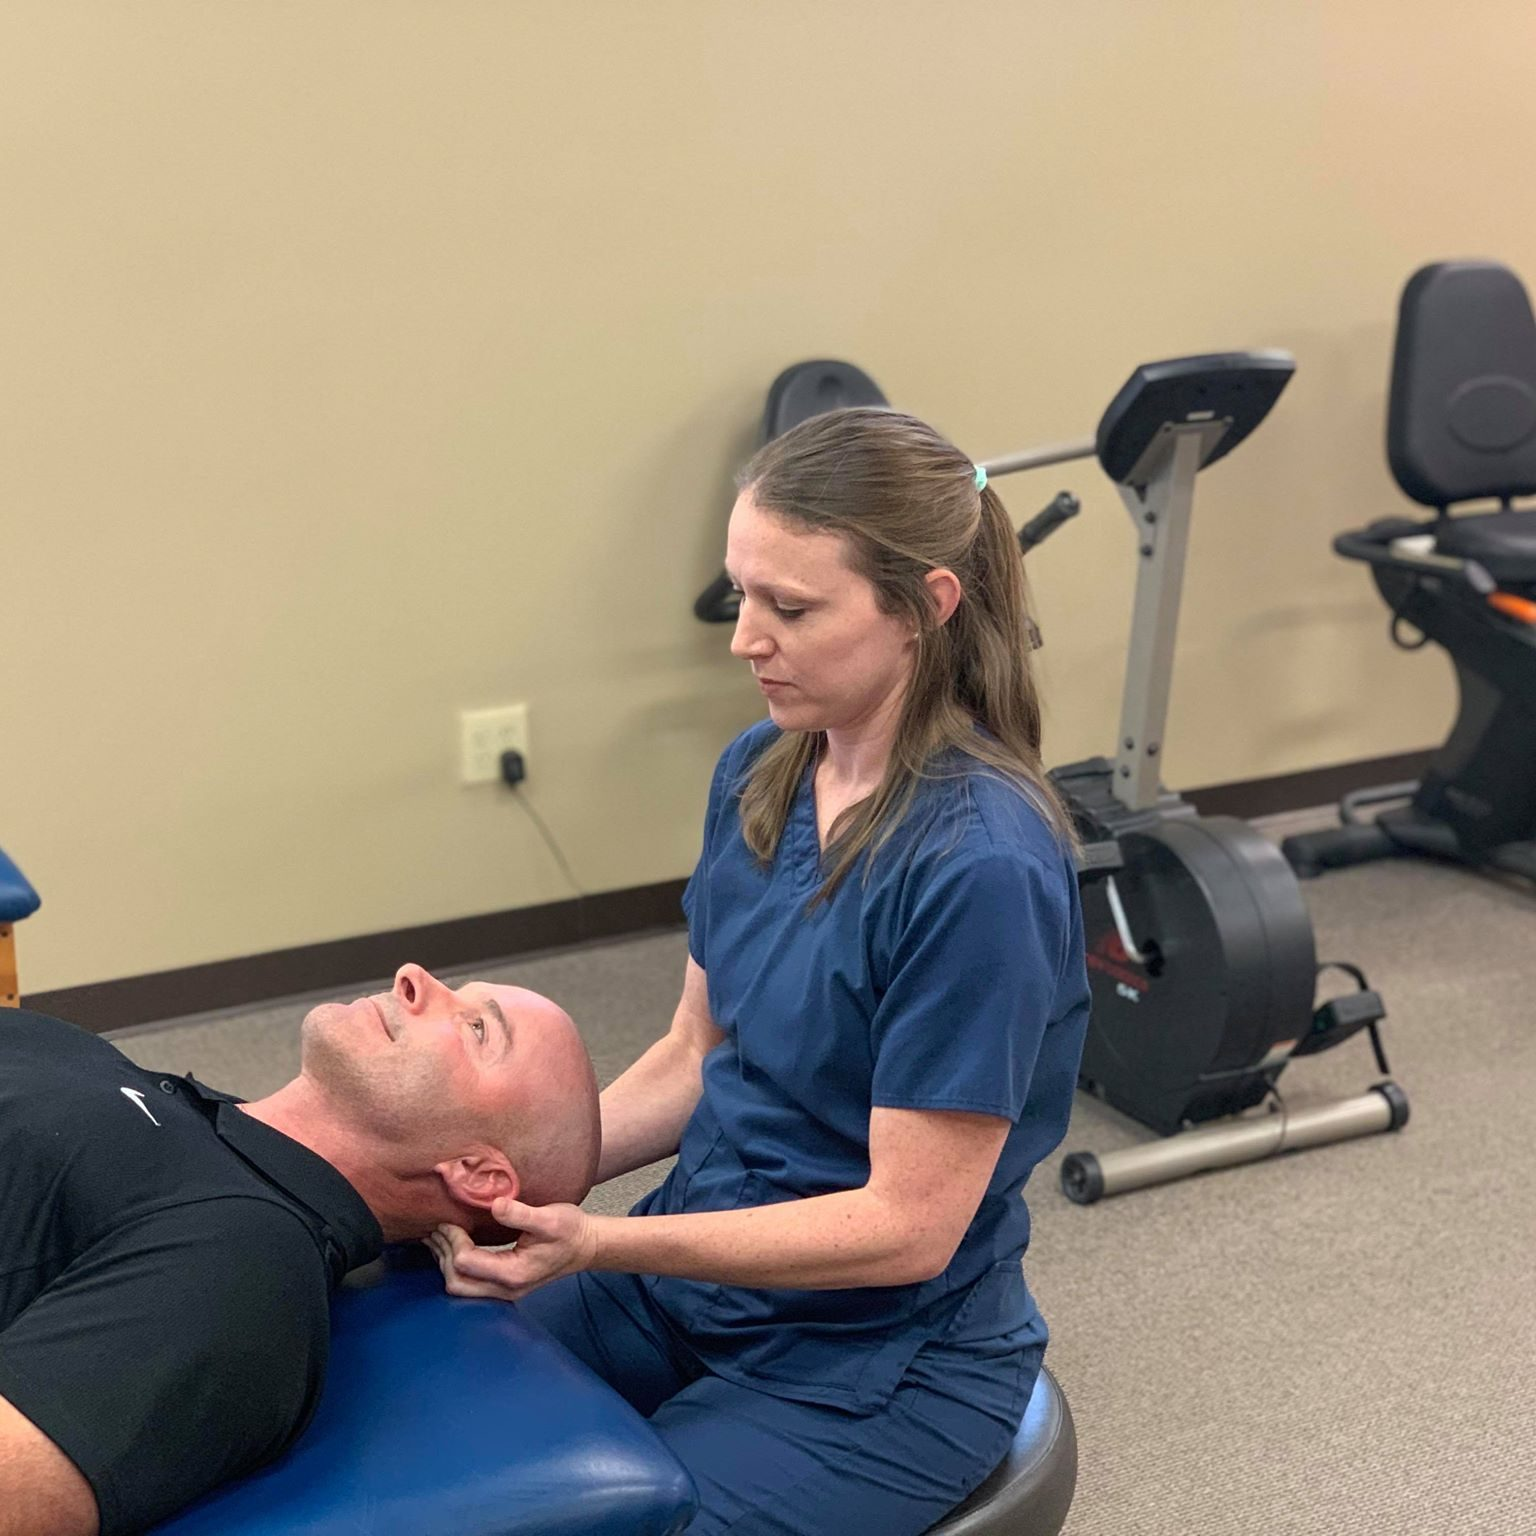 Lafayette Physical Therapy Clinic near me located at 626 Verot School Rd Ste E Lafayette, LA 70508 337-243-6594 Screen reader support enabled. Lafayette Physical Therapy Clinic near me located at 626 Verot School Rd Ste E Lafayette, LA 70508 337-243-6594